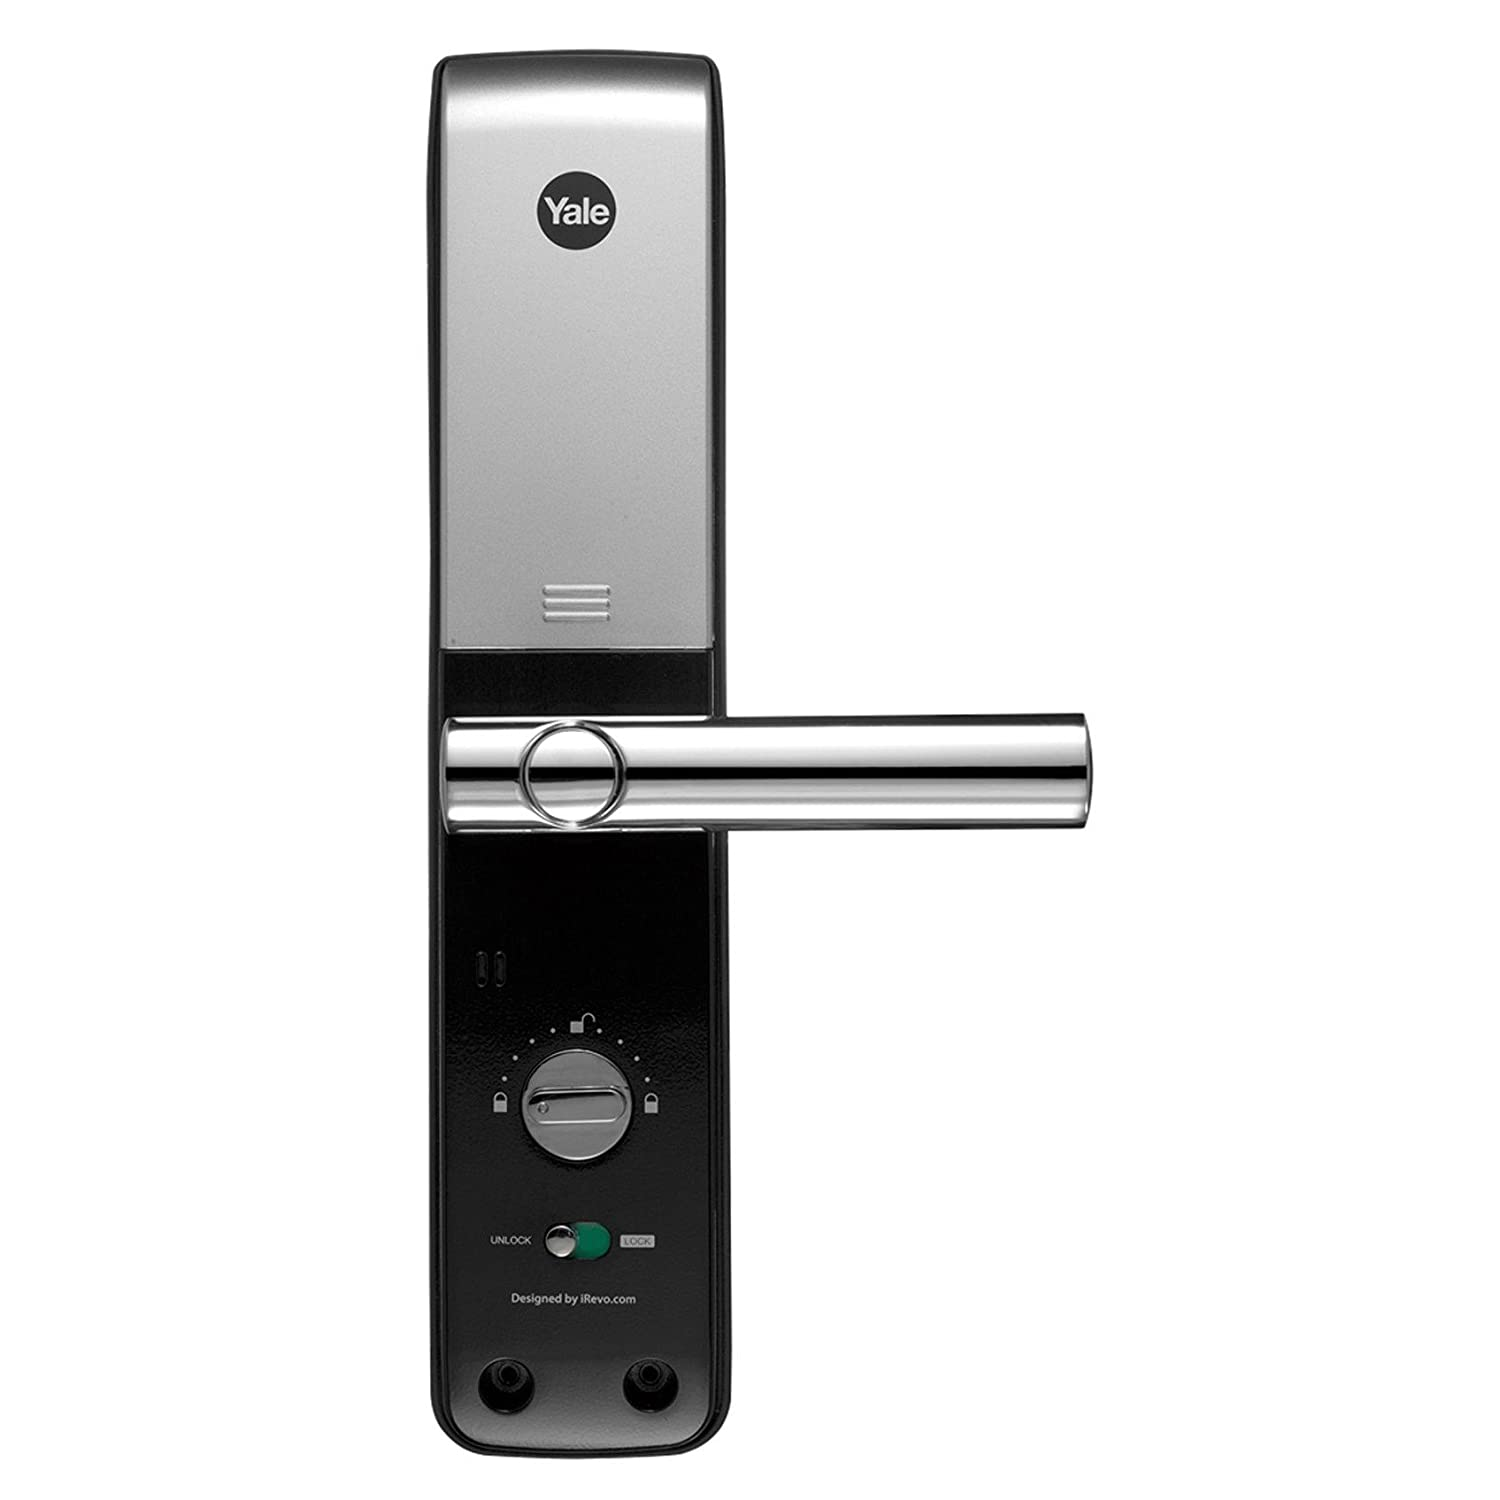 unlock metallic obell for cheap japan yale samsung can resale pocket one lock pull doors epic in singapore gate remote hdb door and promotion seller push best bto digital